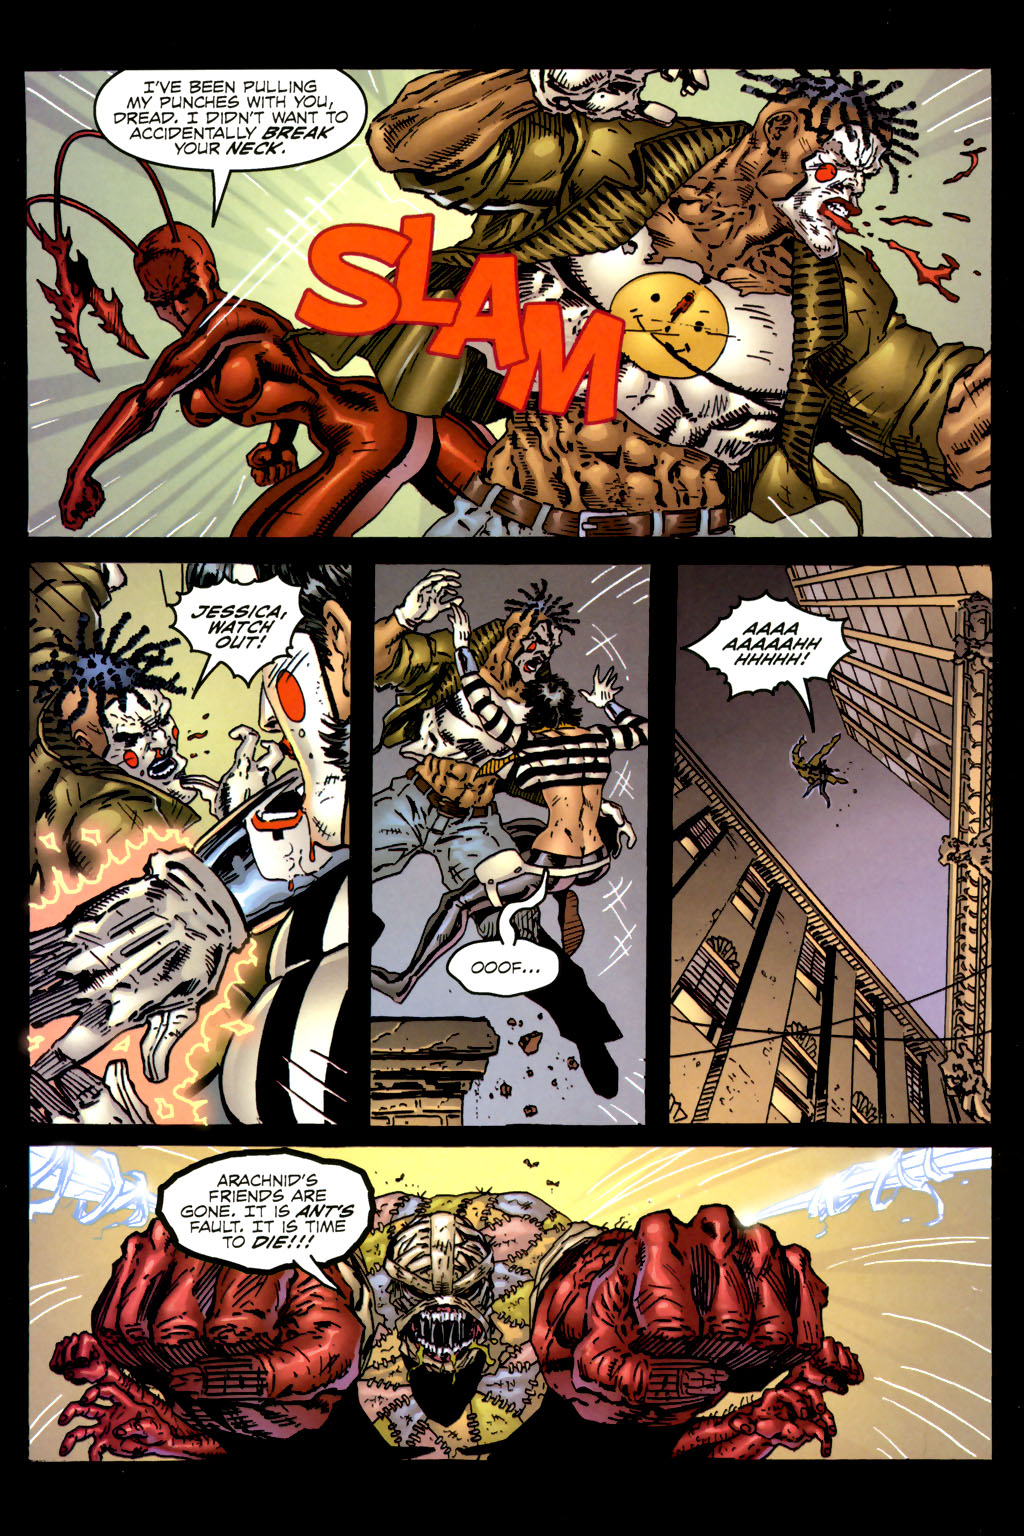 Read online Ant comic -  Issue #2 - 12